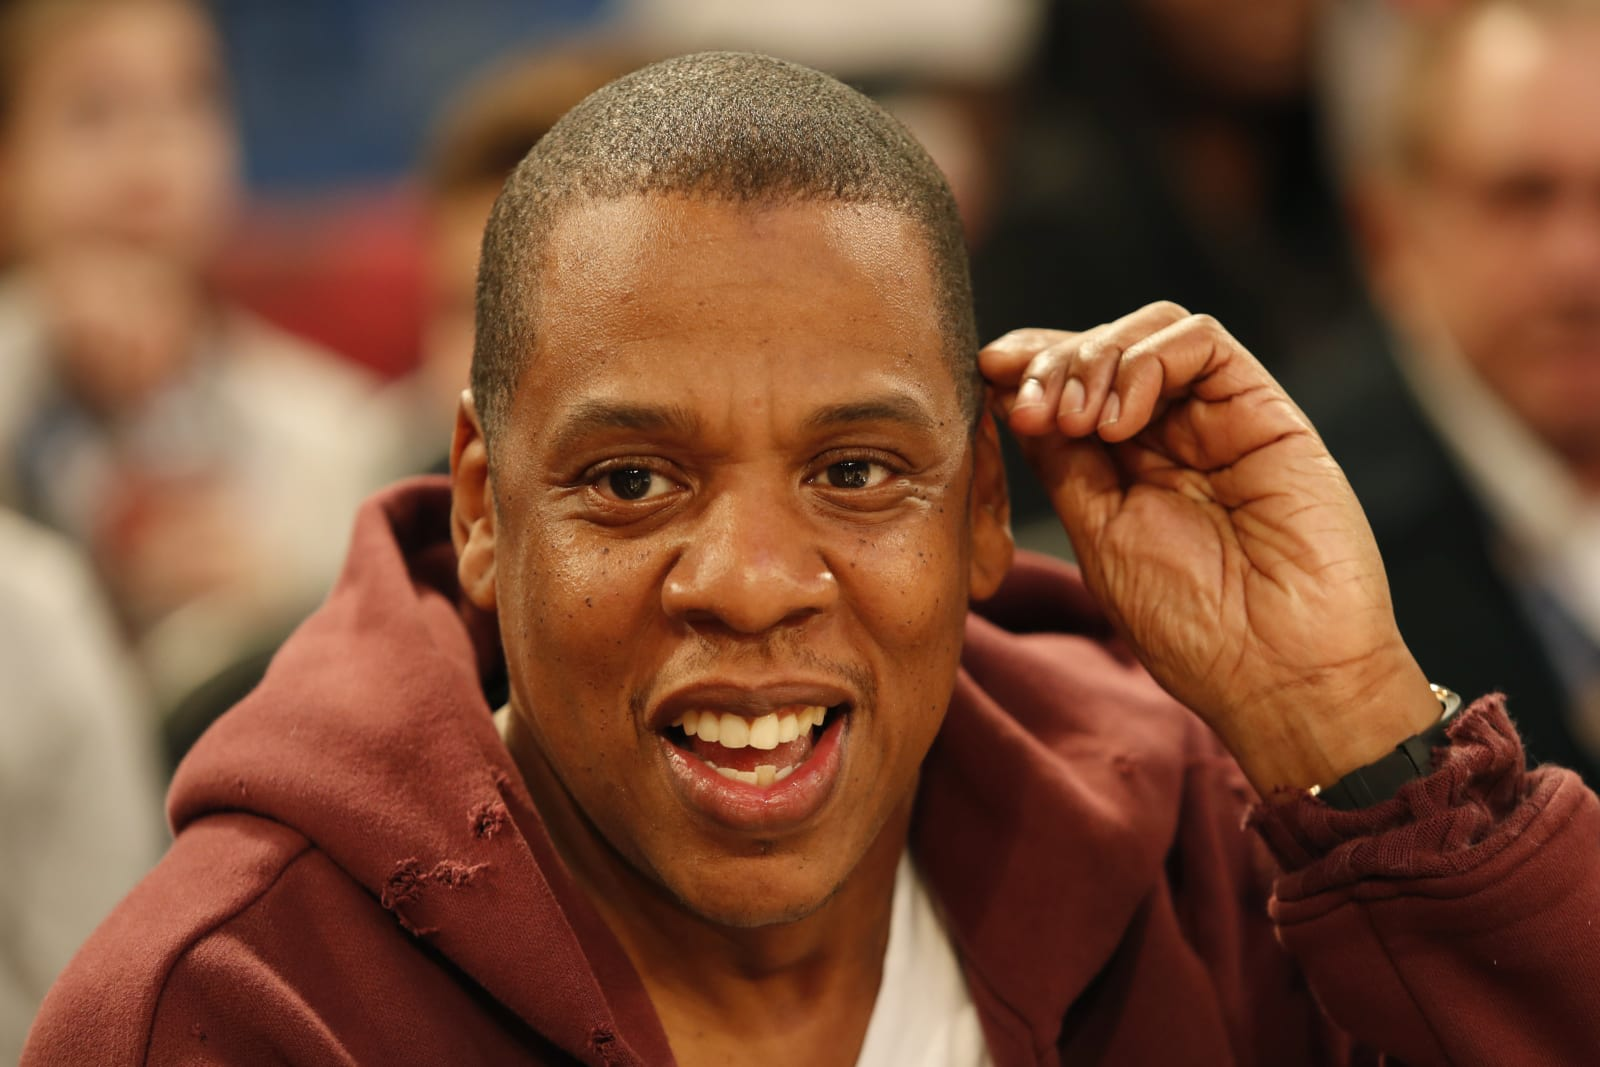 Jay zs albums are disappearing from apple music and spotify tyler kaufman via getty images malvernweather Image collections